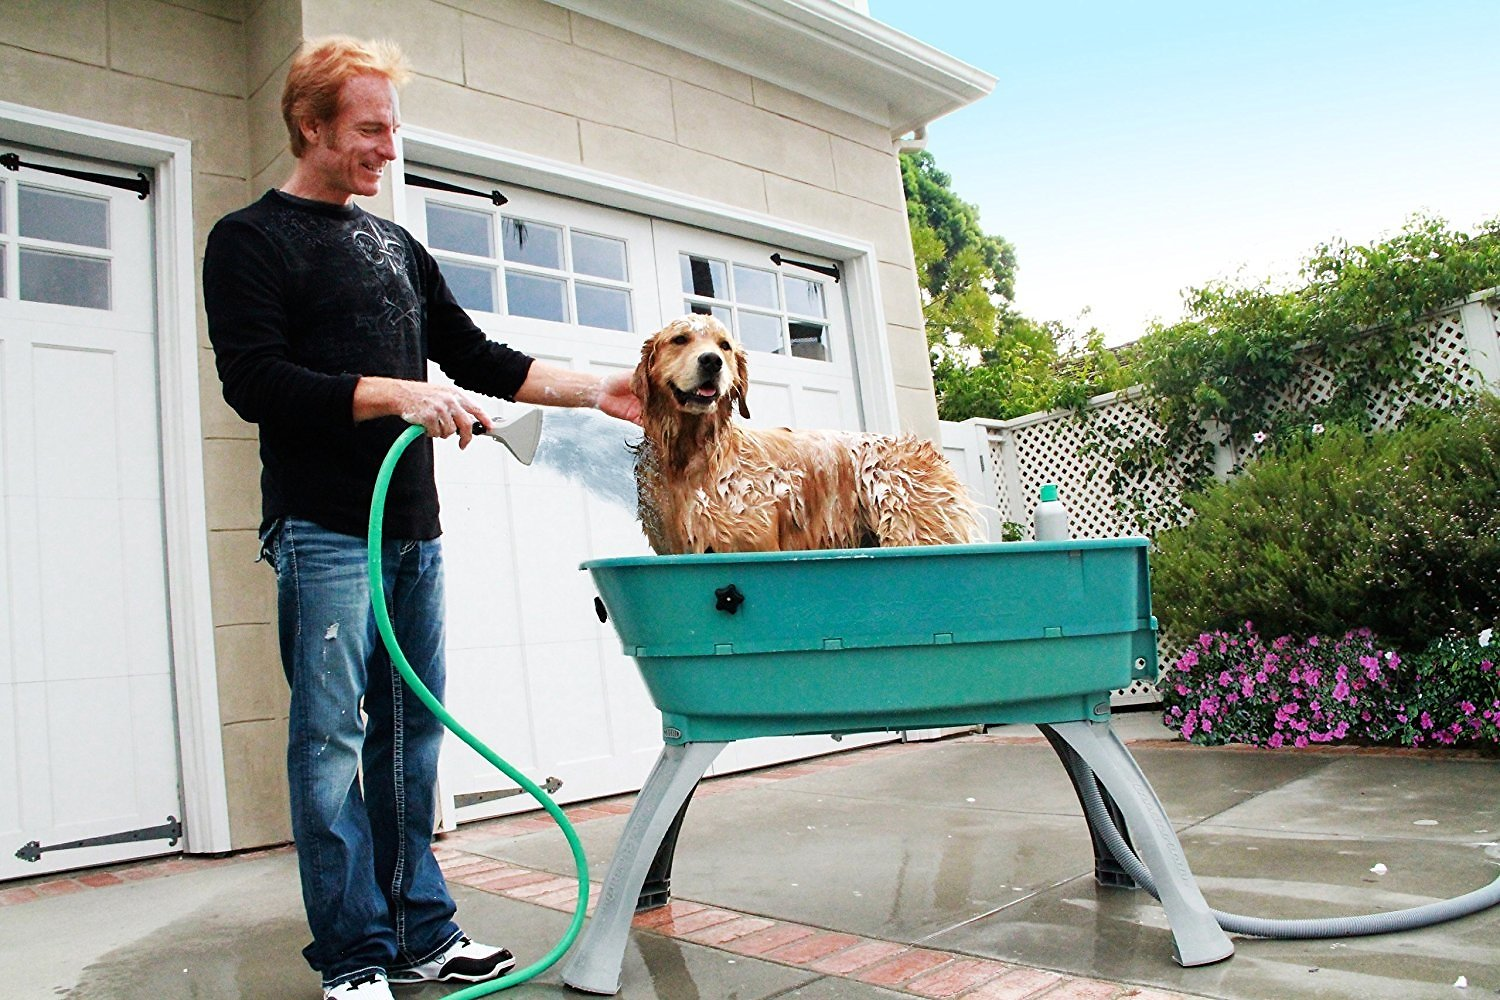 Booster bath elevated dog bathing and grooming center large teal video solutioingenieria Gallery